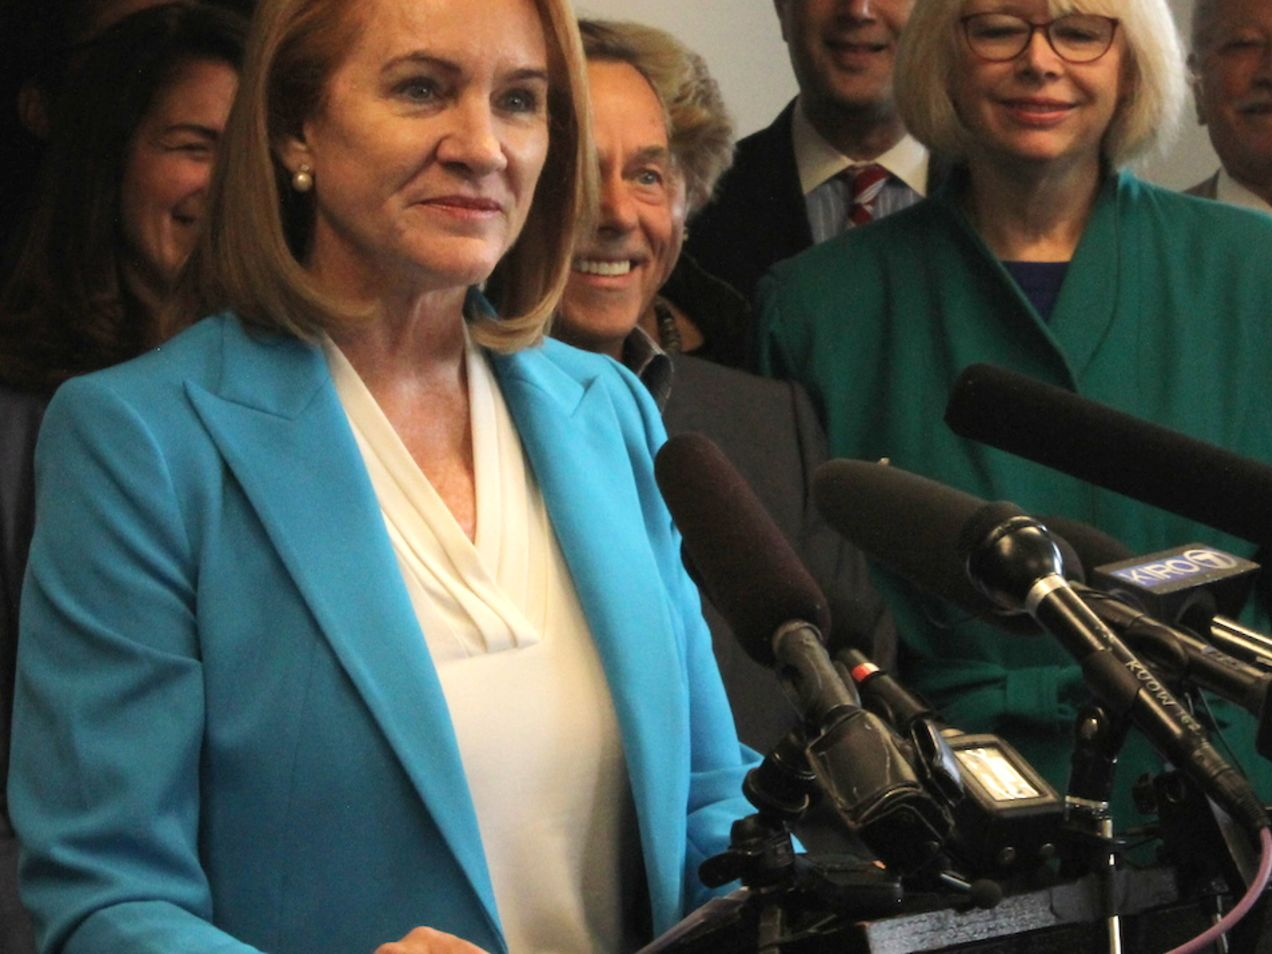 Jenny durkan mayor s race pacific tower may 12 kjijbm hqeqte